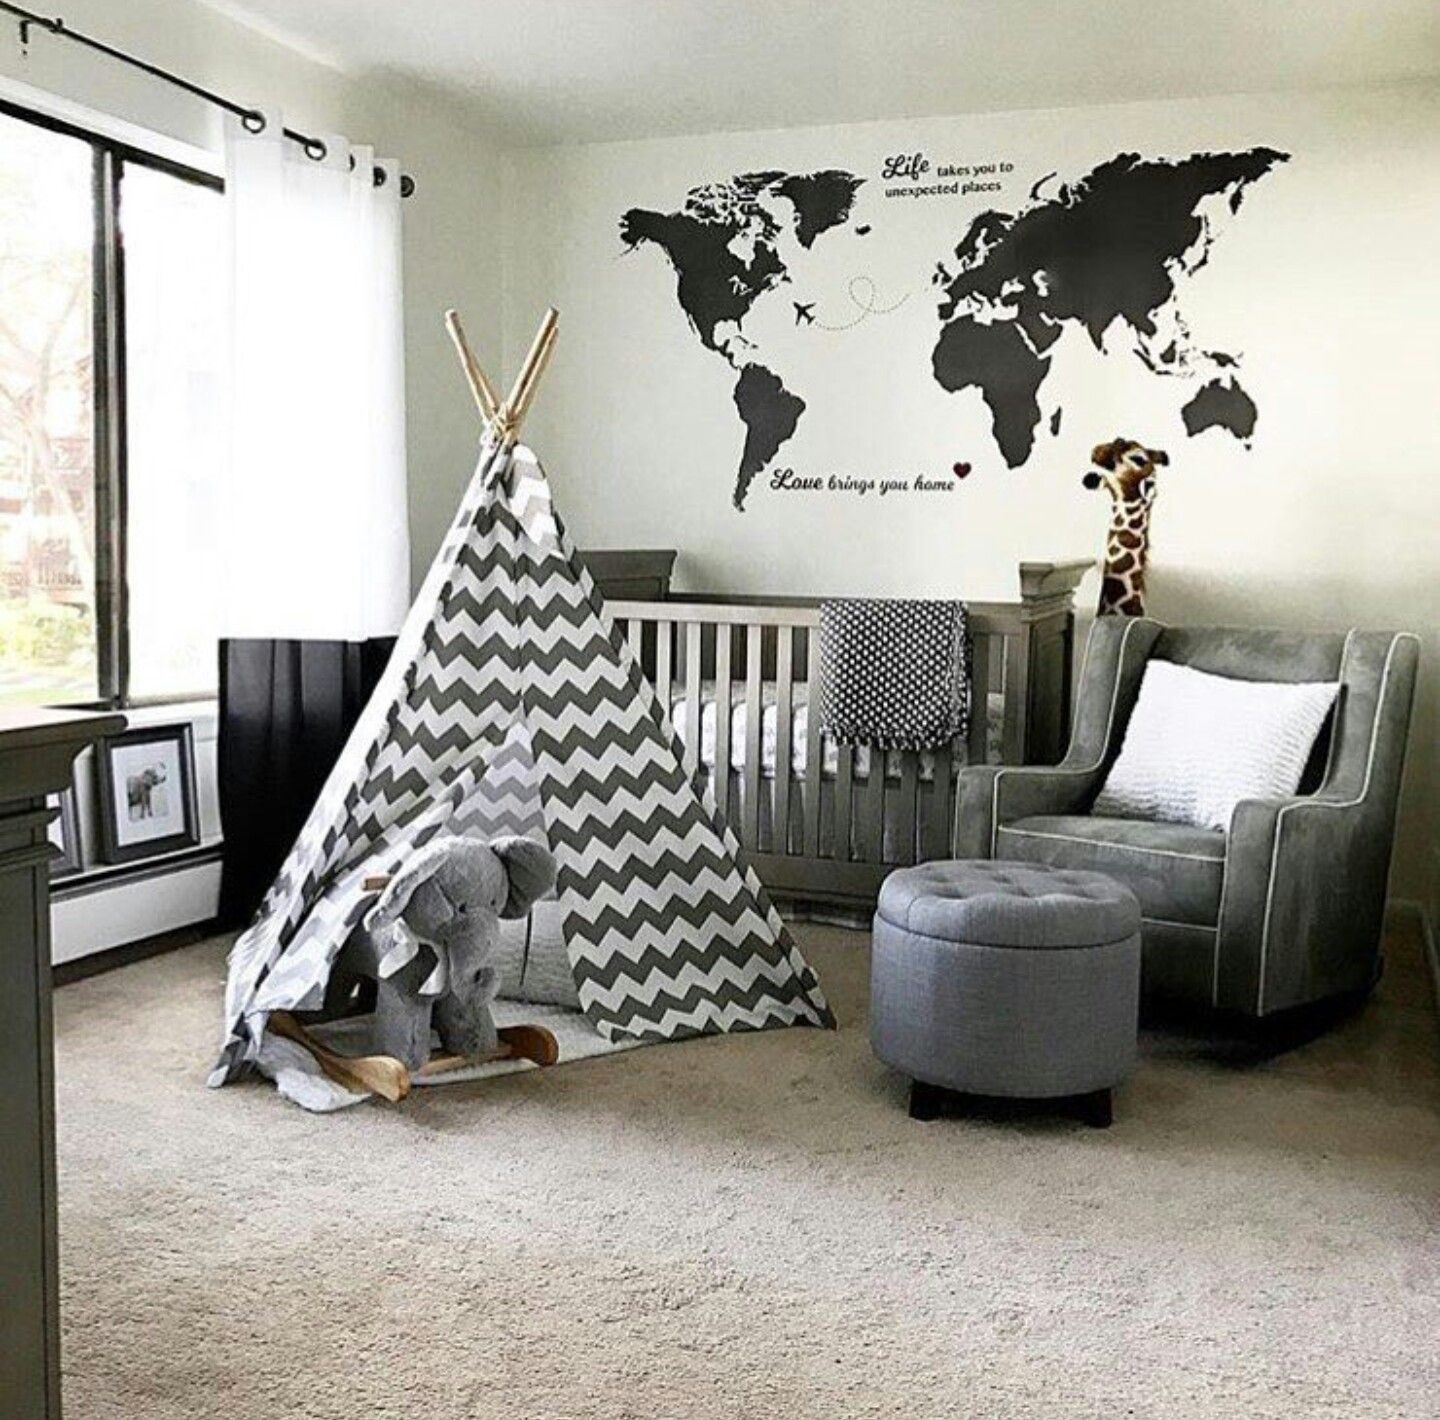 Pin by stephanie wengert on baby meyer pinterest nursery and babies this world map decal makes geography look cool we are crushing on this adventuretravel inspired nursery which is one of our top 2016 nursery trends gumiabroncs Images